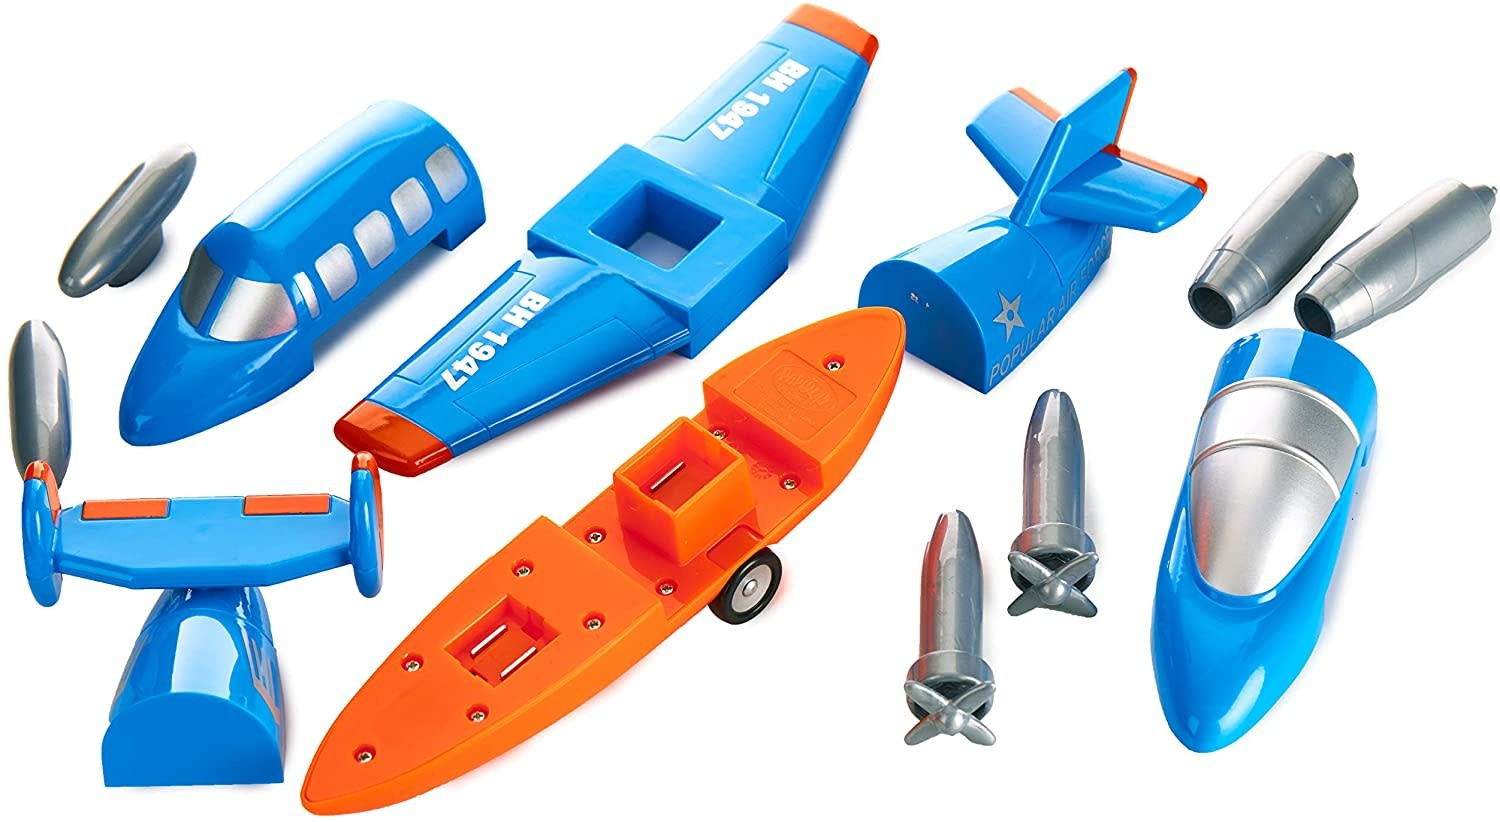 Magnetic Build-A-Plane by Popular Playthings